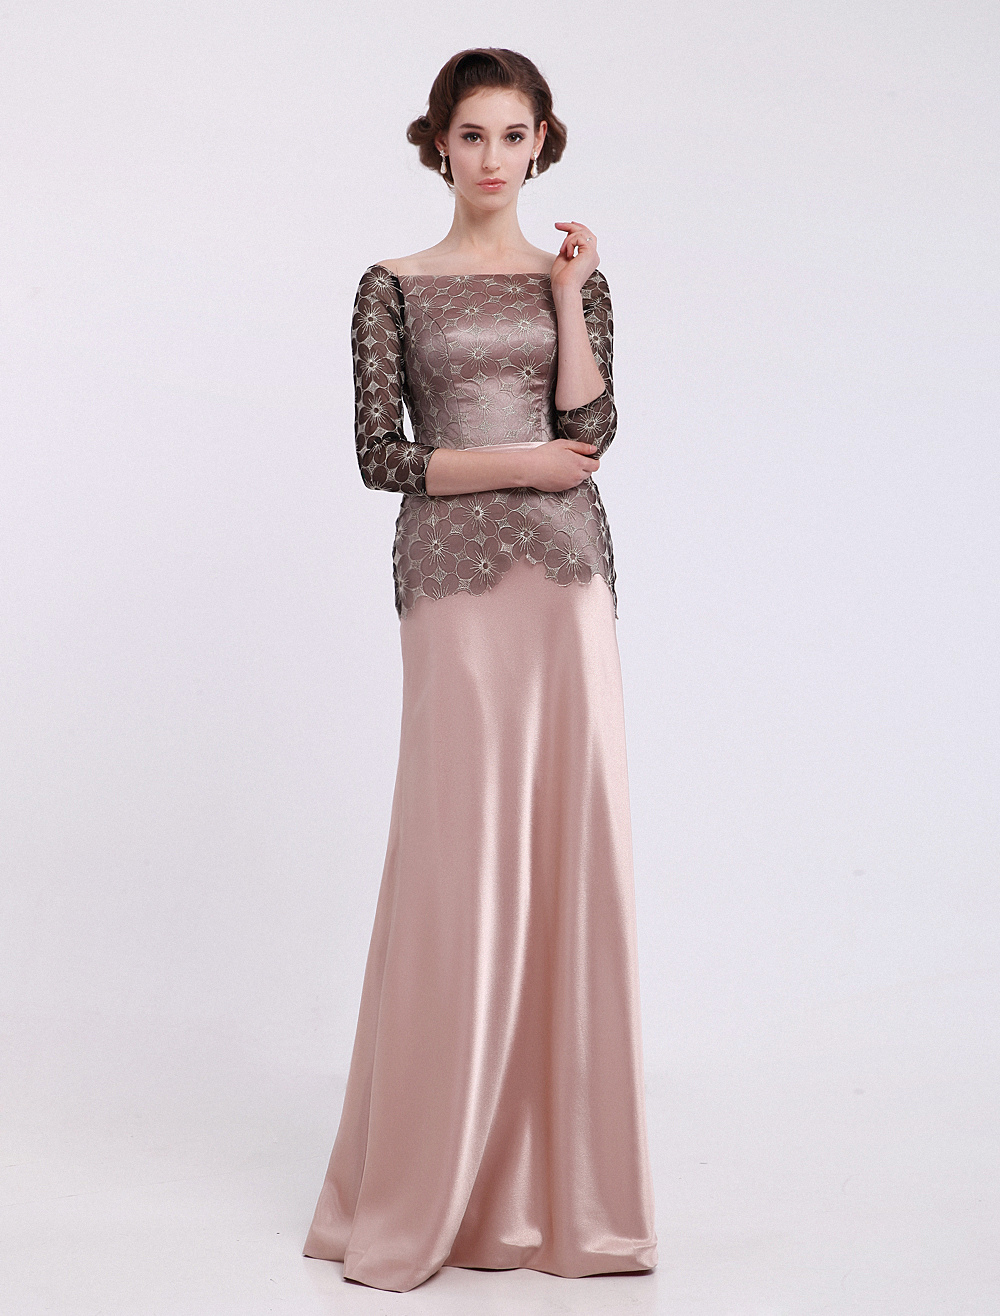 Blushing Pink Sheath Bateau Neck Lace Dress For Mother of the Bride with 3/4 Length Sleeves Milanoo (Wedding) photo